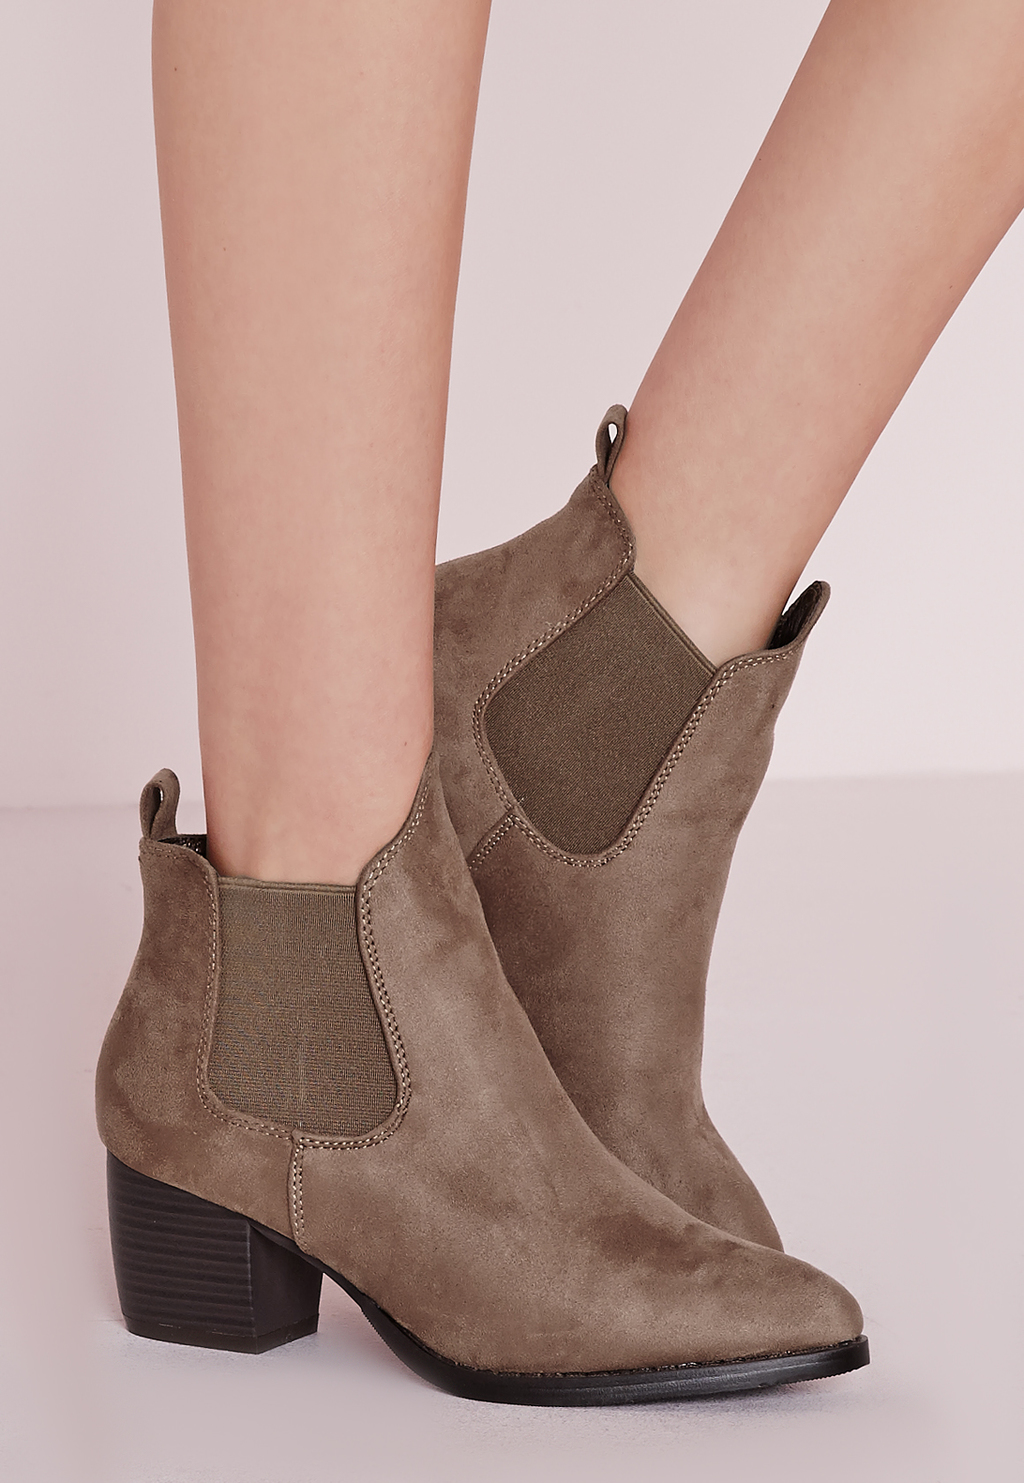 Low Heel Chelsea Boots Taupe, Grey - predominant colour: taupe; occasions: casual, creative work; heel height: mid; heel: standard; toe: round toe; boot length: ankle boot; finish: plain; pattern: plain; material: faux suede; style: chelsea; season: s/s 2016; wardrobe: basic